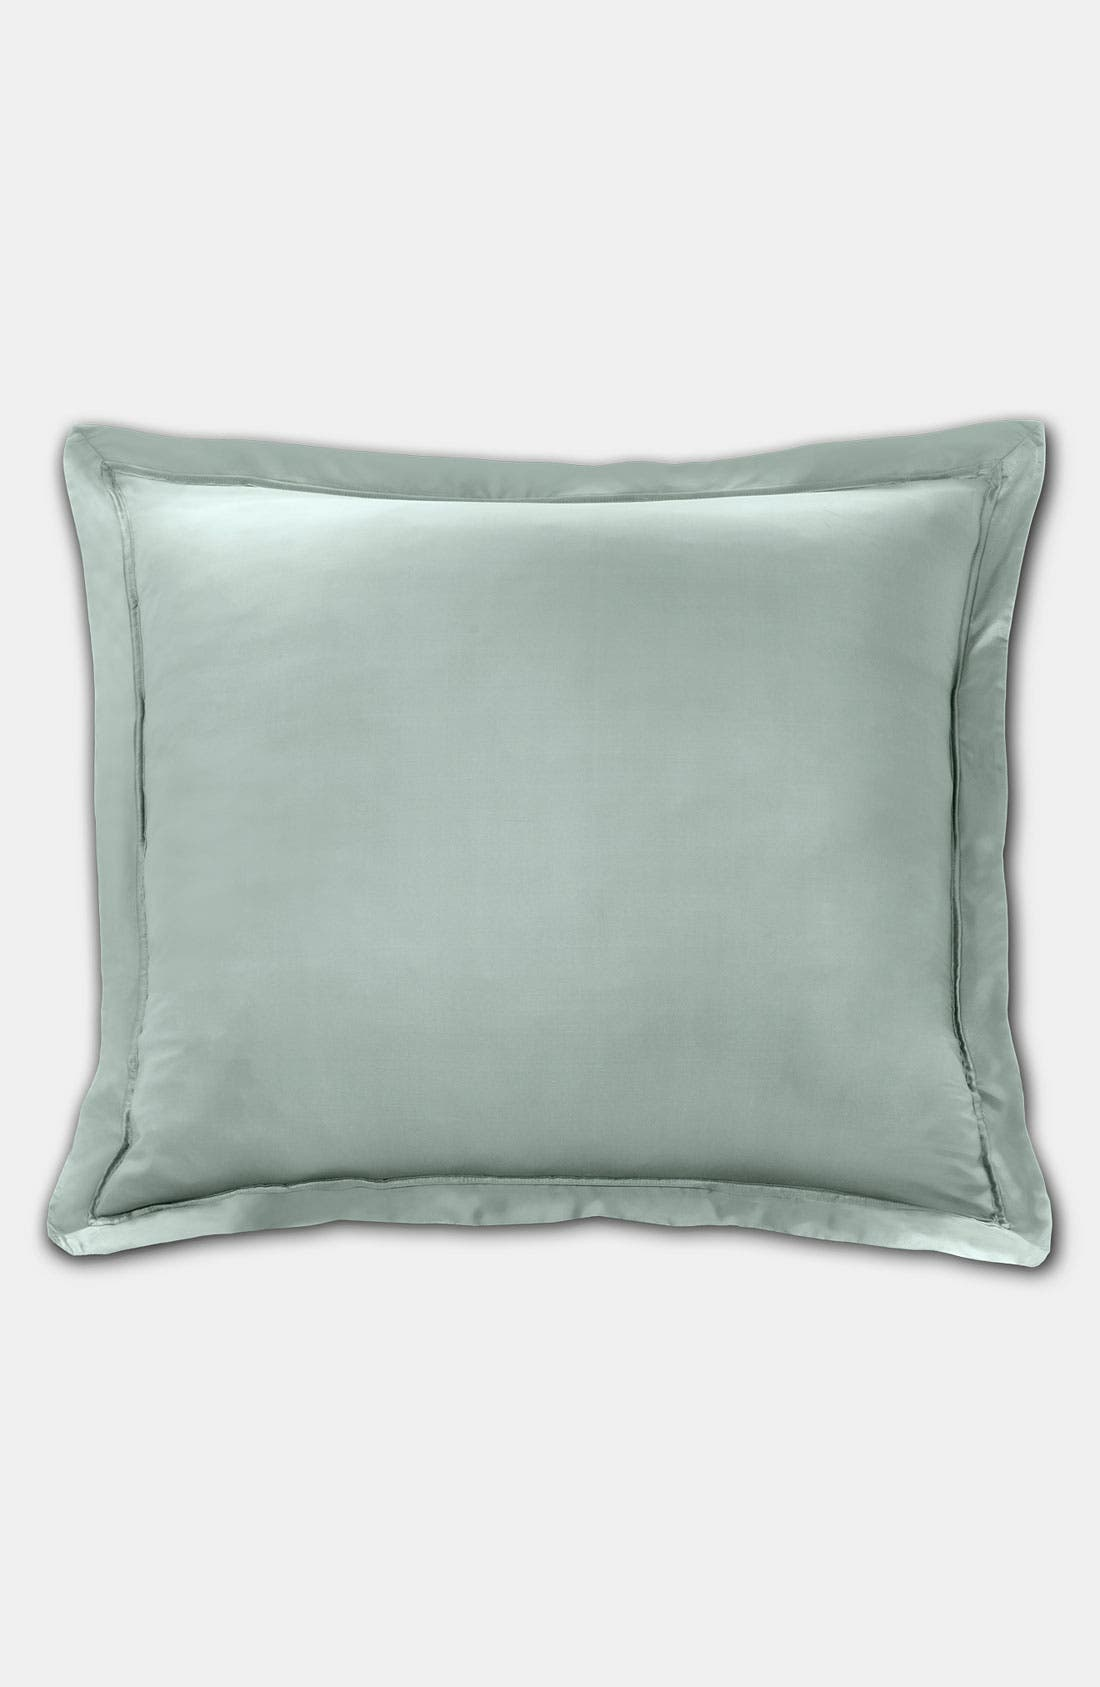 Alternate Image 1 Selected - Donna Karan 'Lustre Seam' Euro Pillow Sham